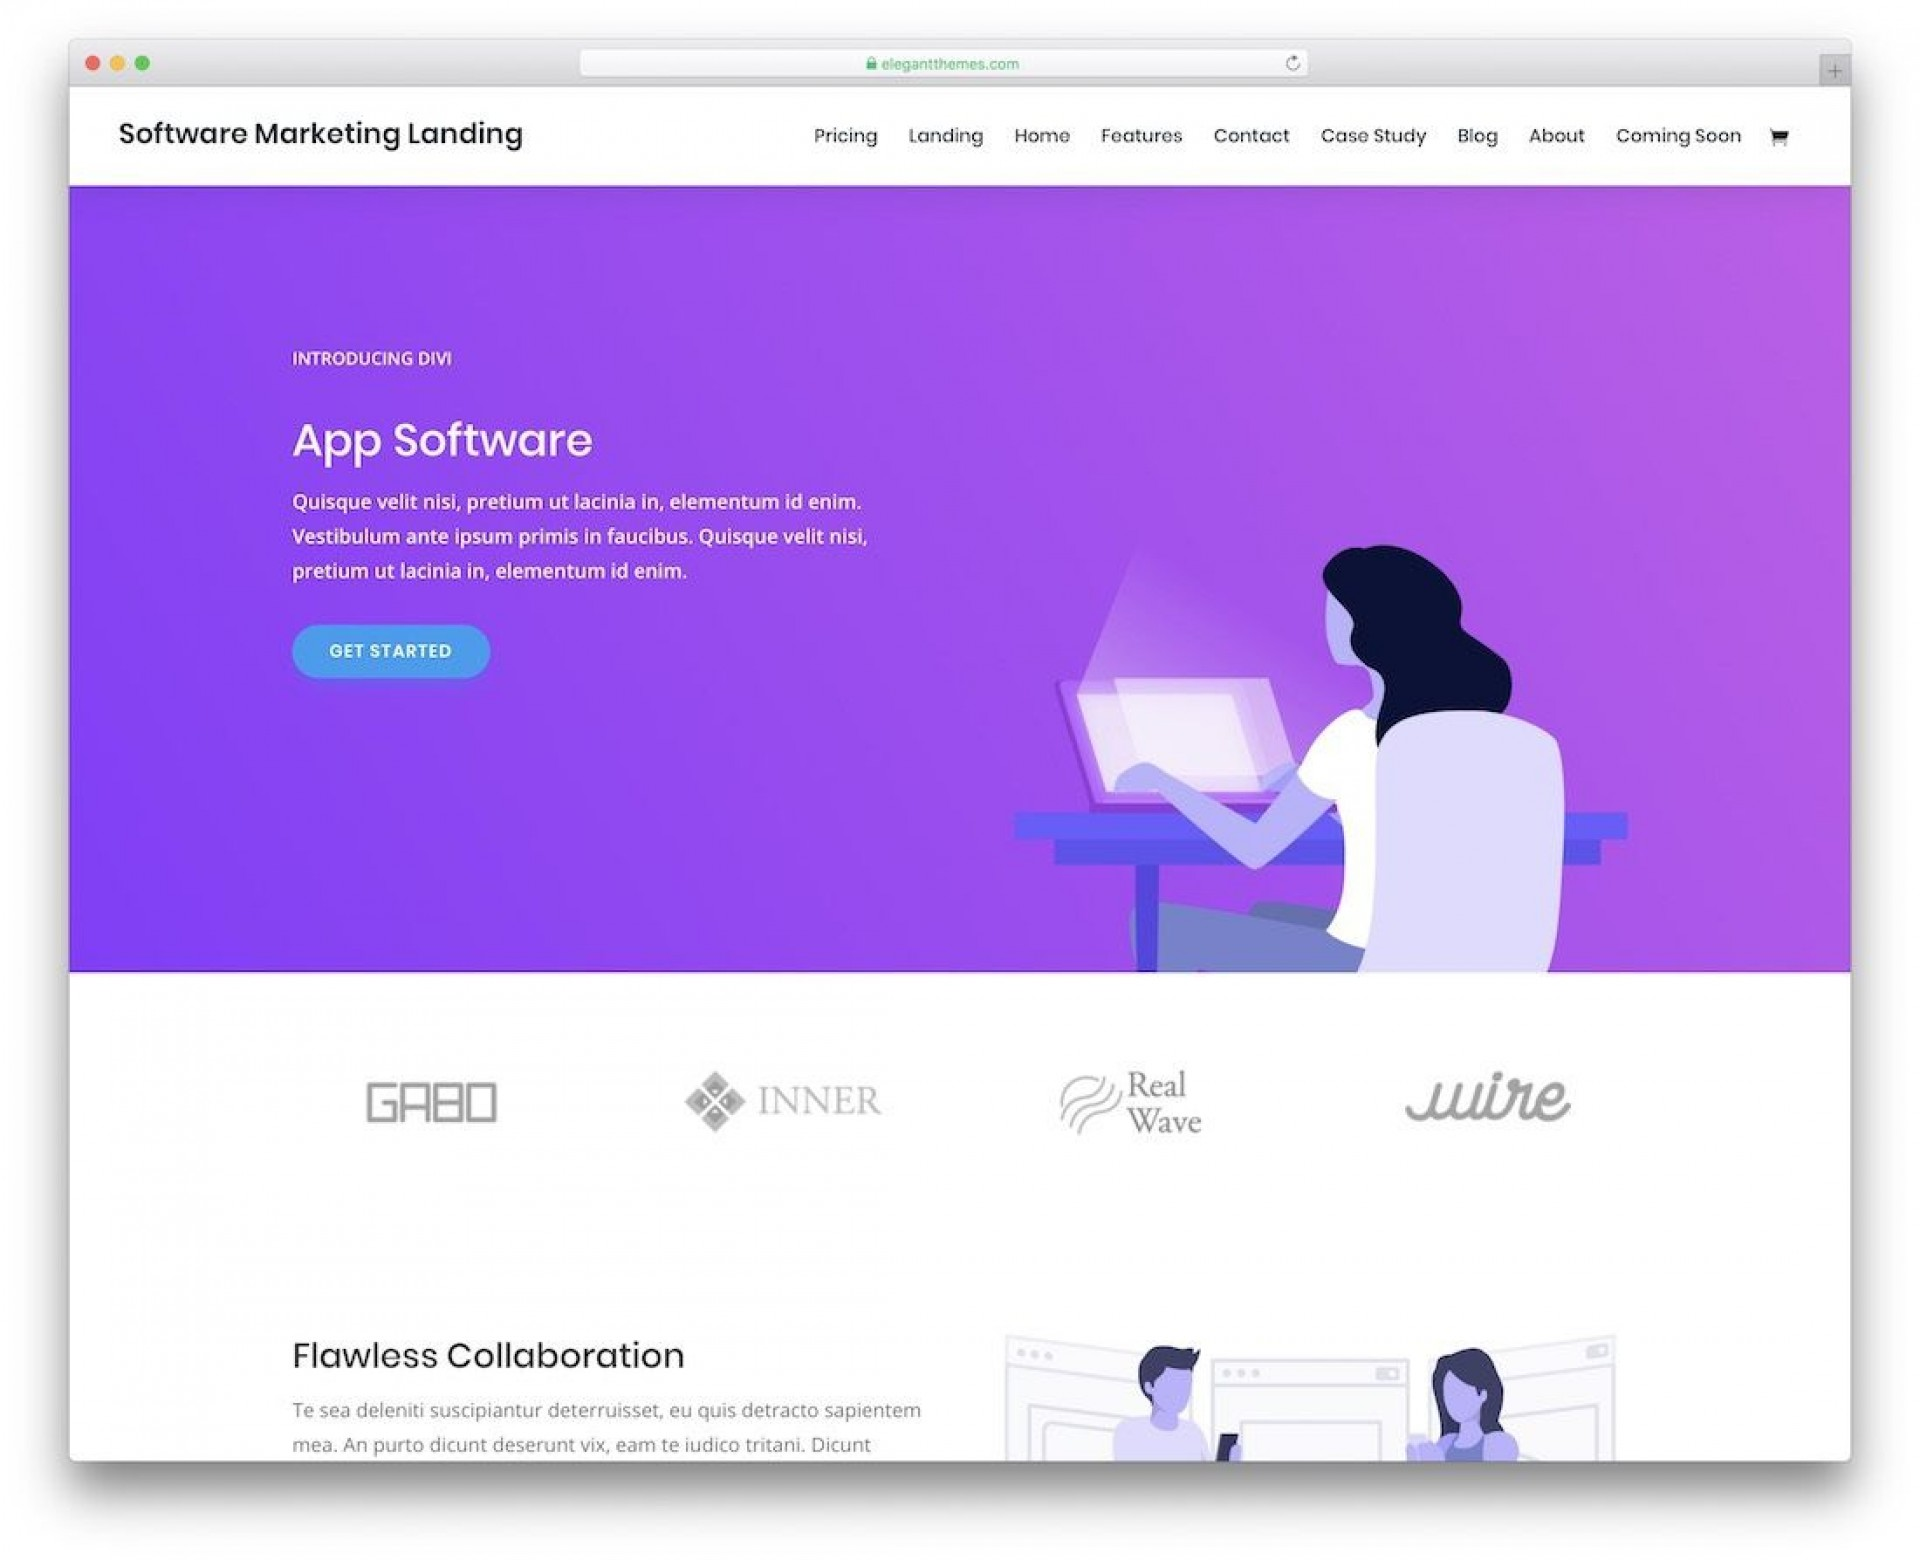 002 Remarkable One Page Website Template Free Image  Bootstrap 4 Html5 Download Wordpres1920